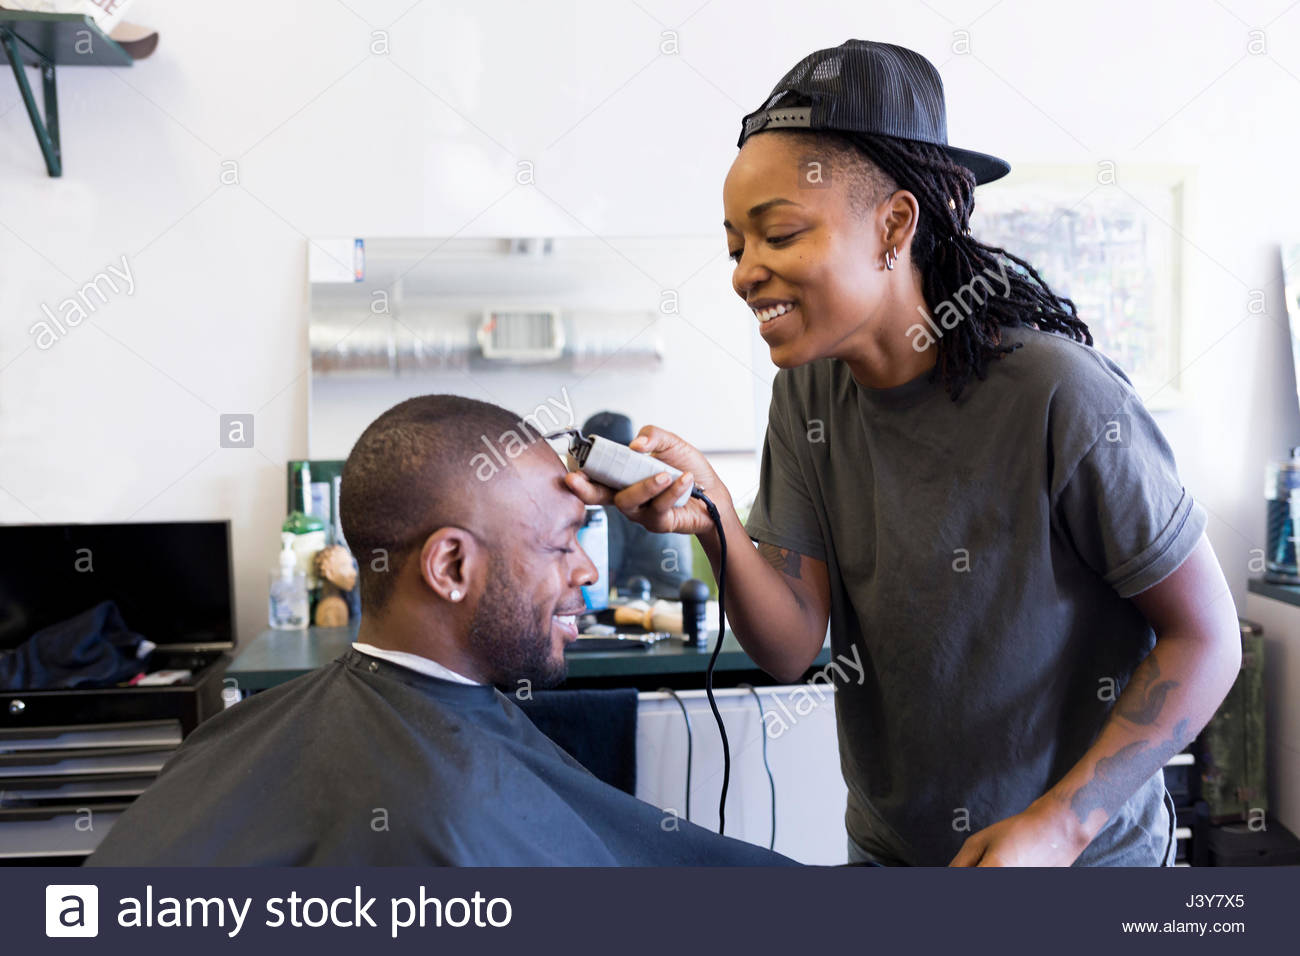 Female barber using hair clippers on male customer in barber shop - Stock Image